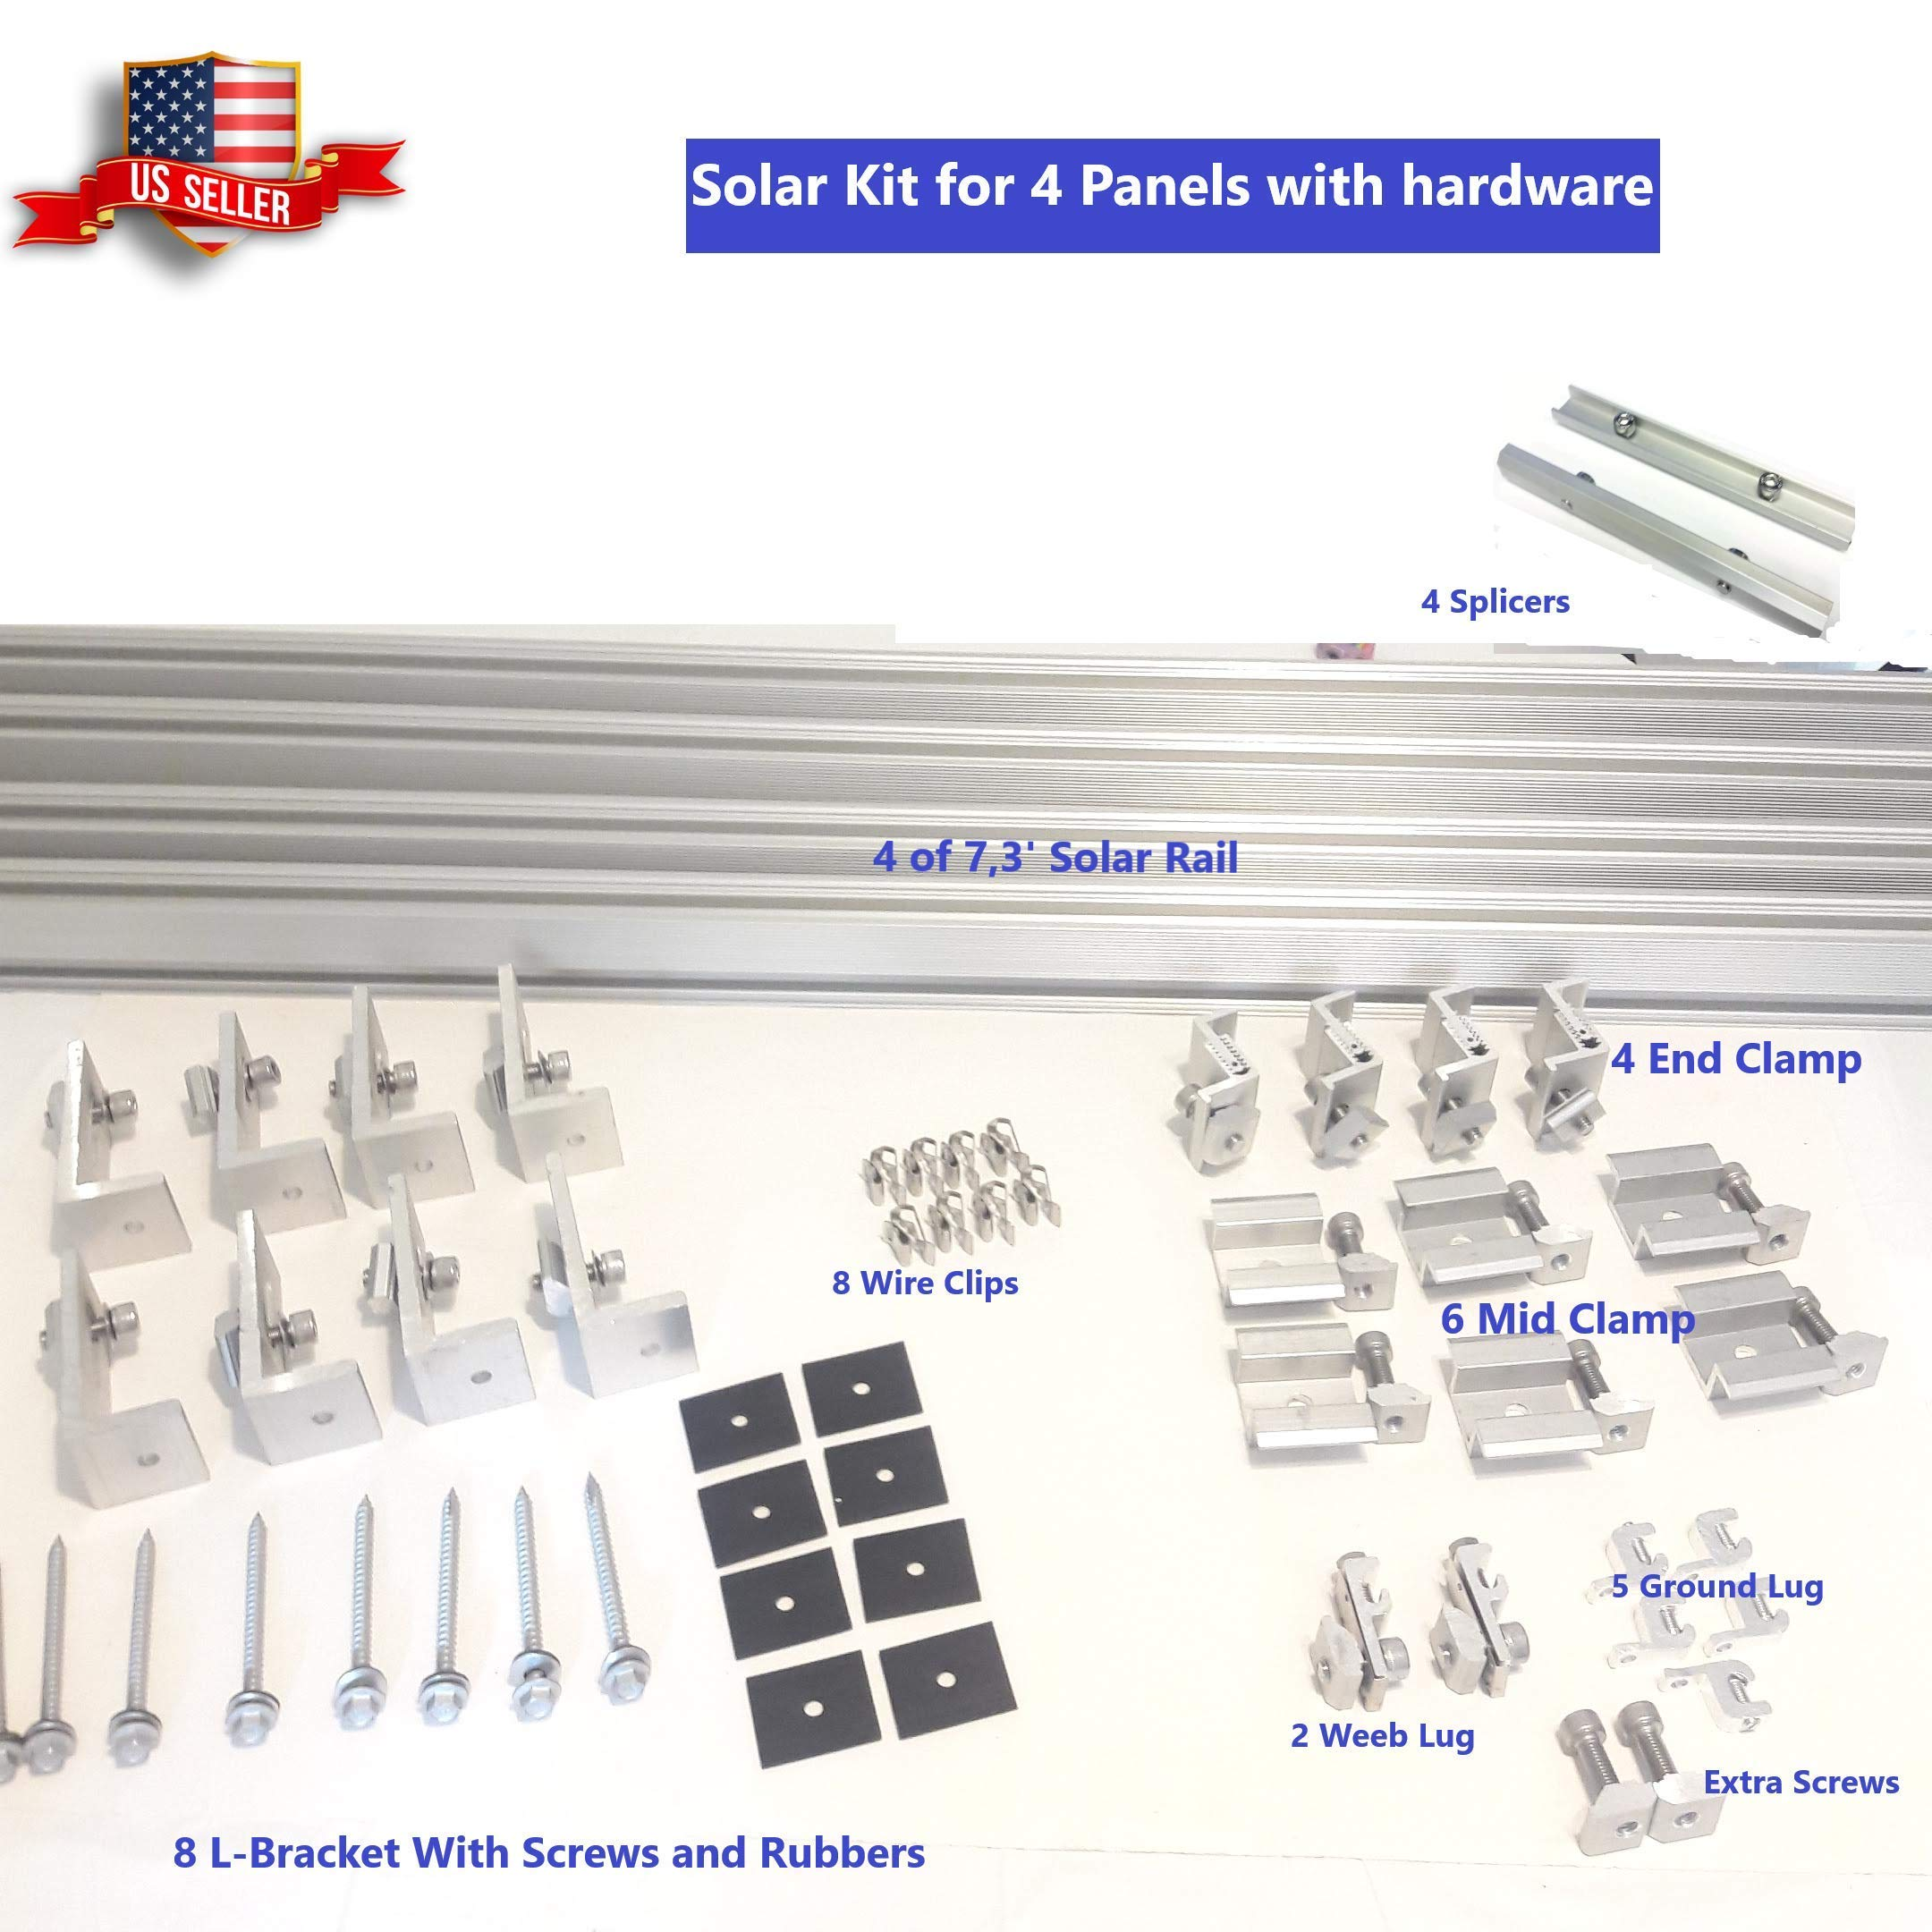 Uisolar Solar Panel Mounting Kit 7.3 ft Rails for 4 Full Size Panels up to 350W